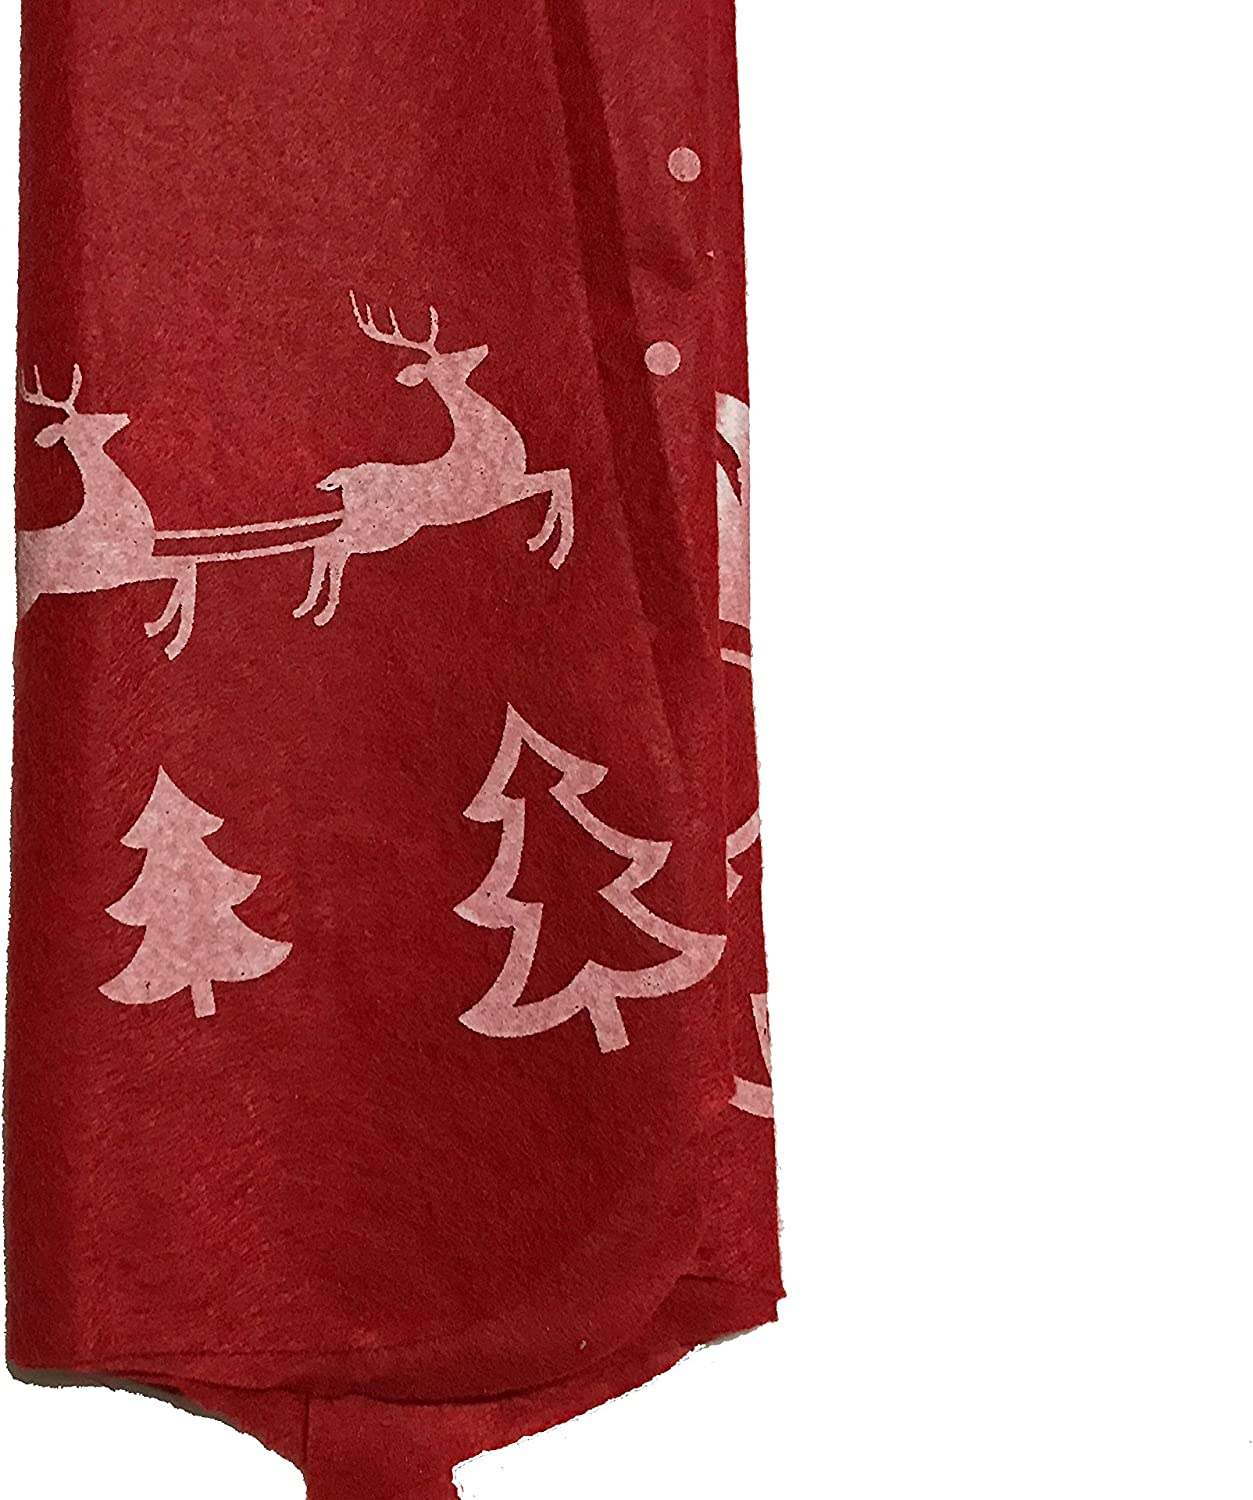 Christmas All items in the store House Opening large release sale Tree Skirt Reindeer Joy Snowflake or Cones